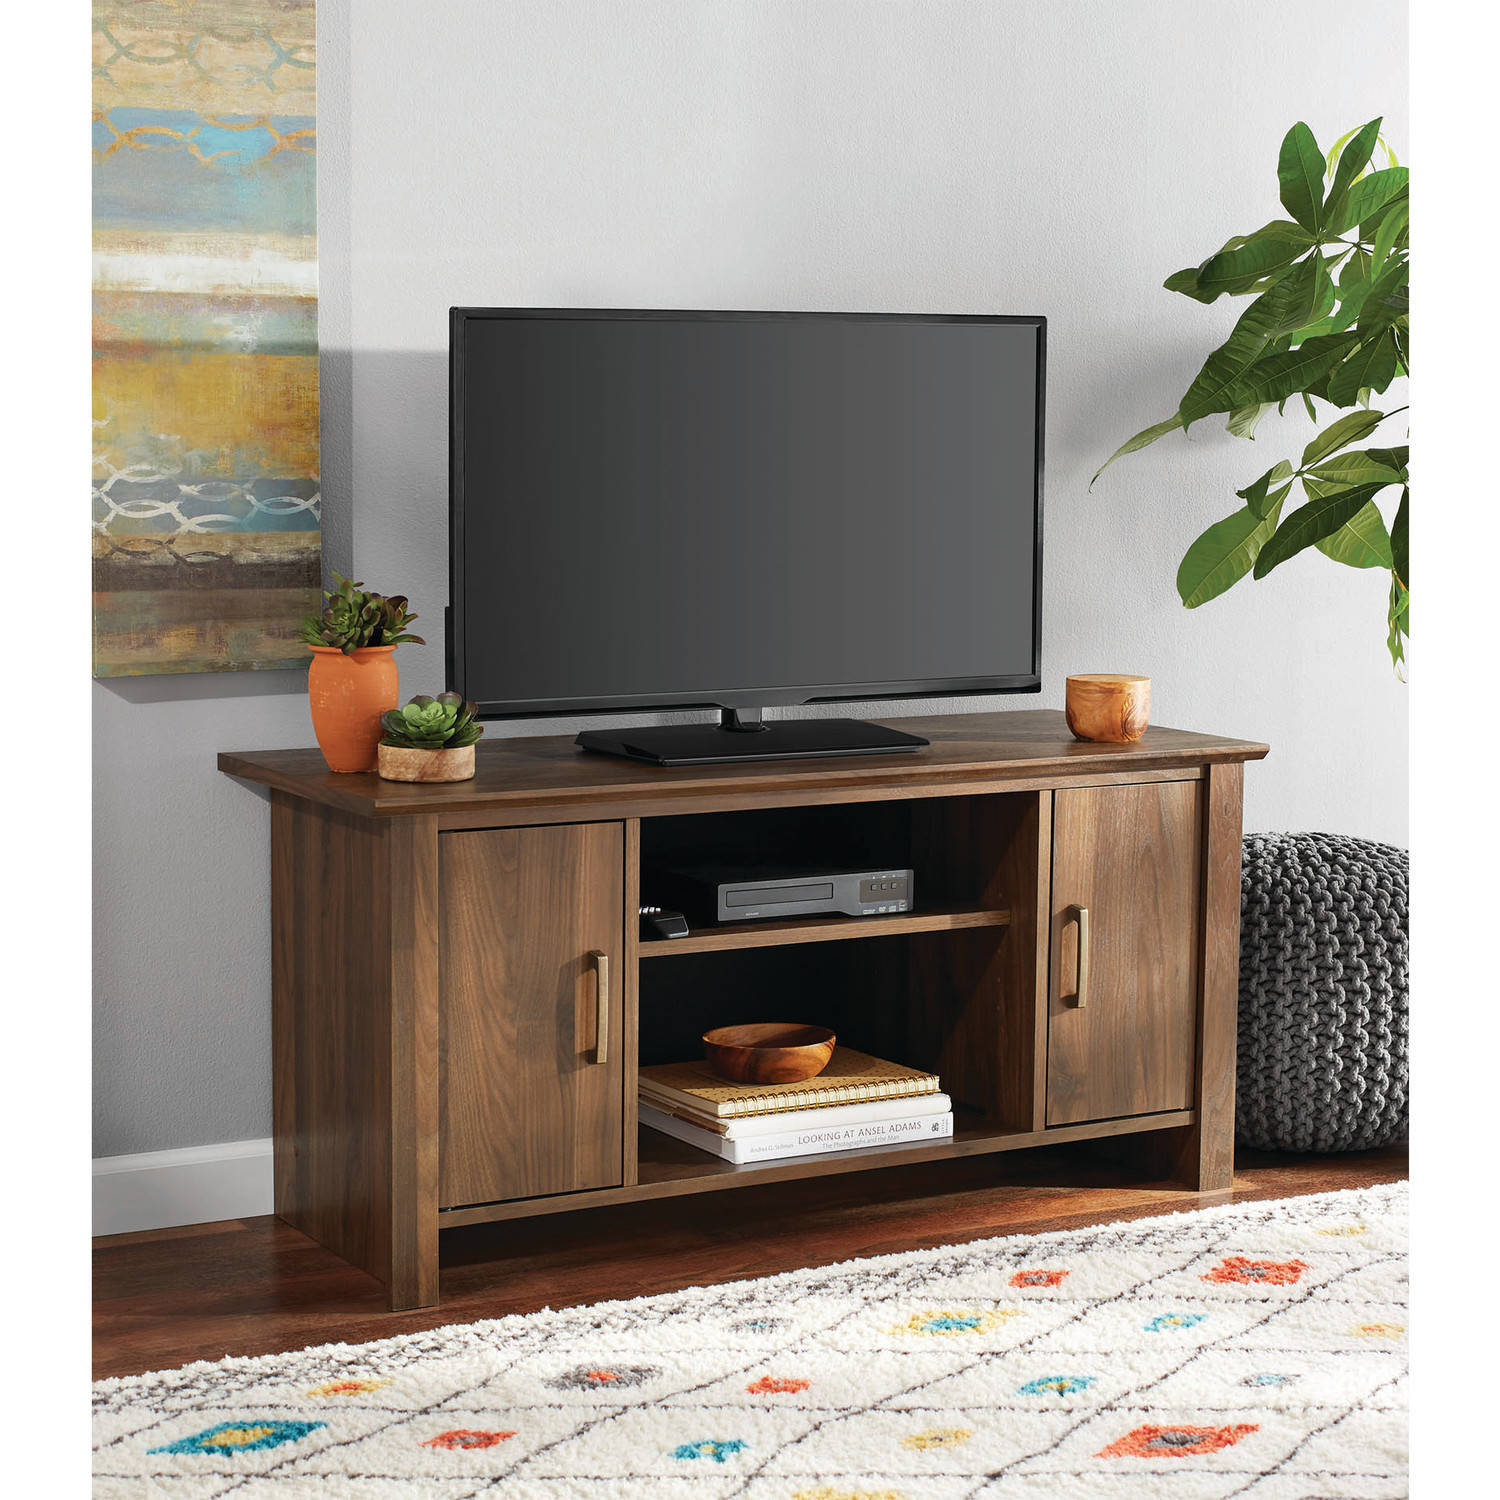 """Mainstays Tv Stand For Flat Screen Tvs Up To 47"""", Canyon Walnut Intended For Canyon 64 Inch Tv Stands (View 18 of 30)"""